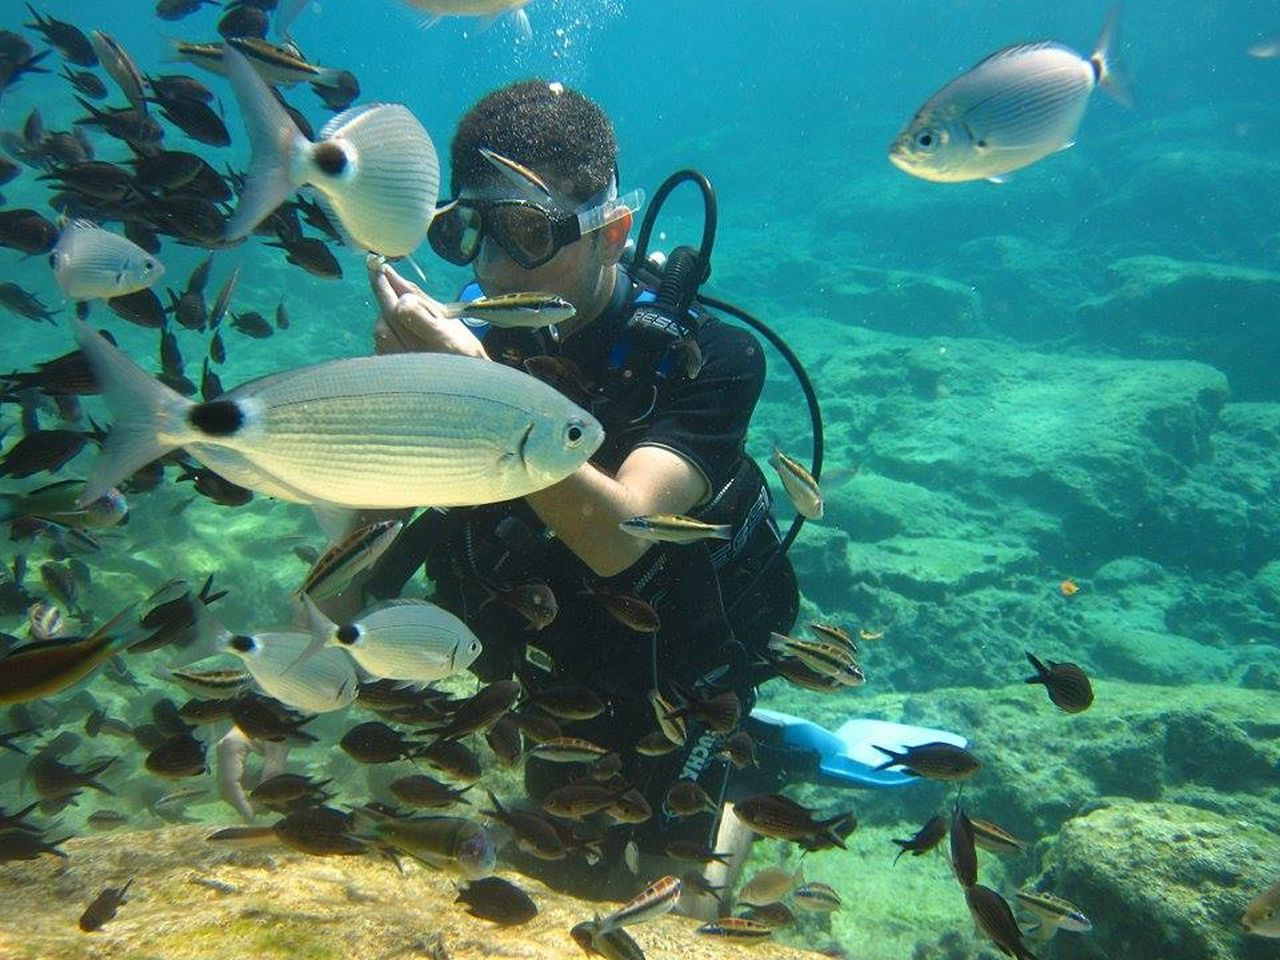 underwater, animal themes, swimming, fish, undersea, sea life, animals in the wild, one person, coral, one animal, animal wildlife, water, sea, real people, scuba diving, day, nature, outdoors, young adult, people